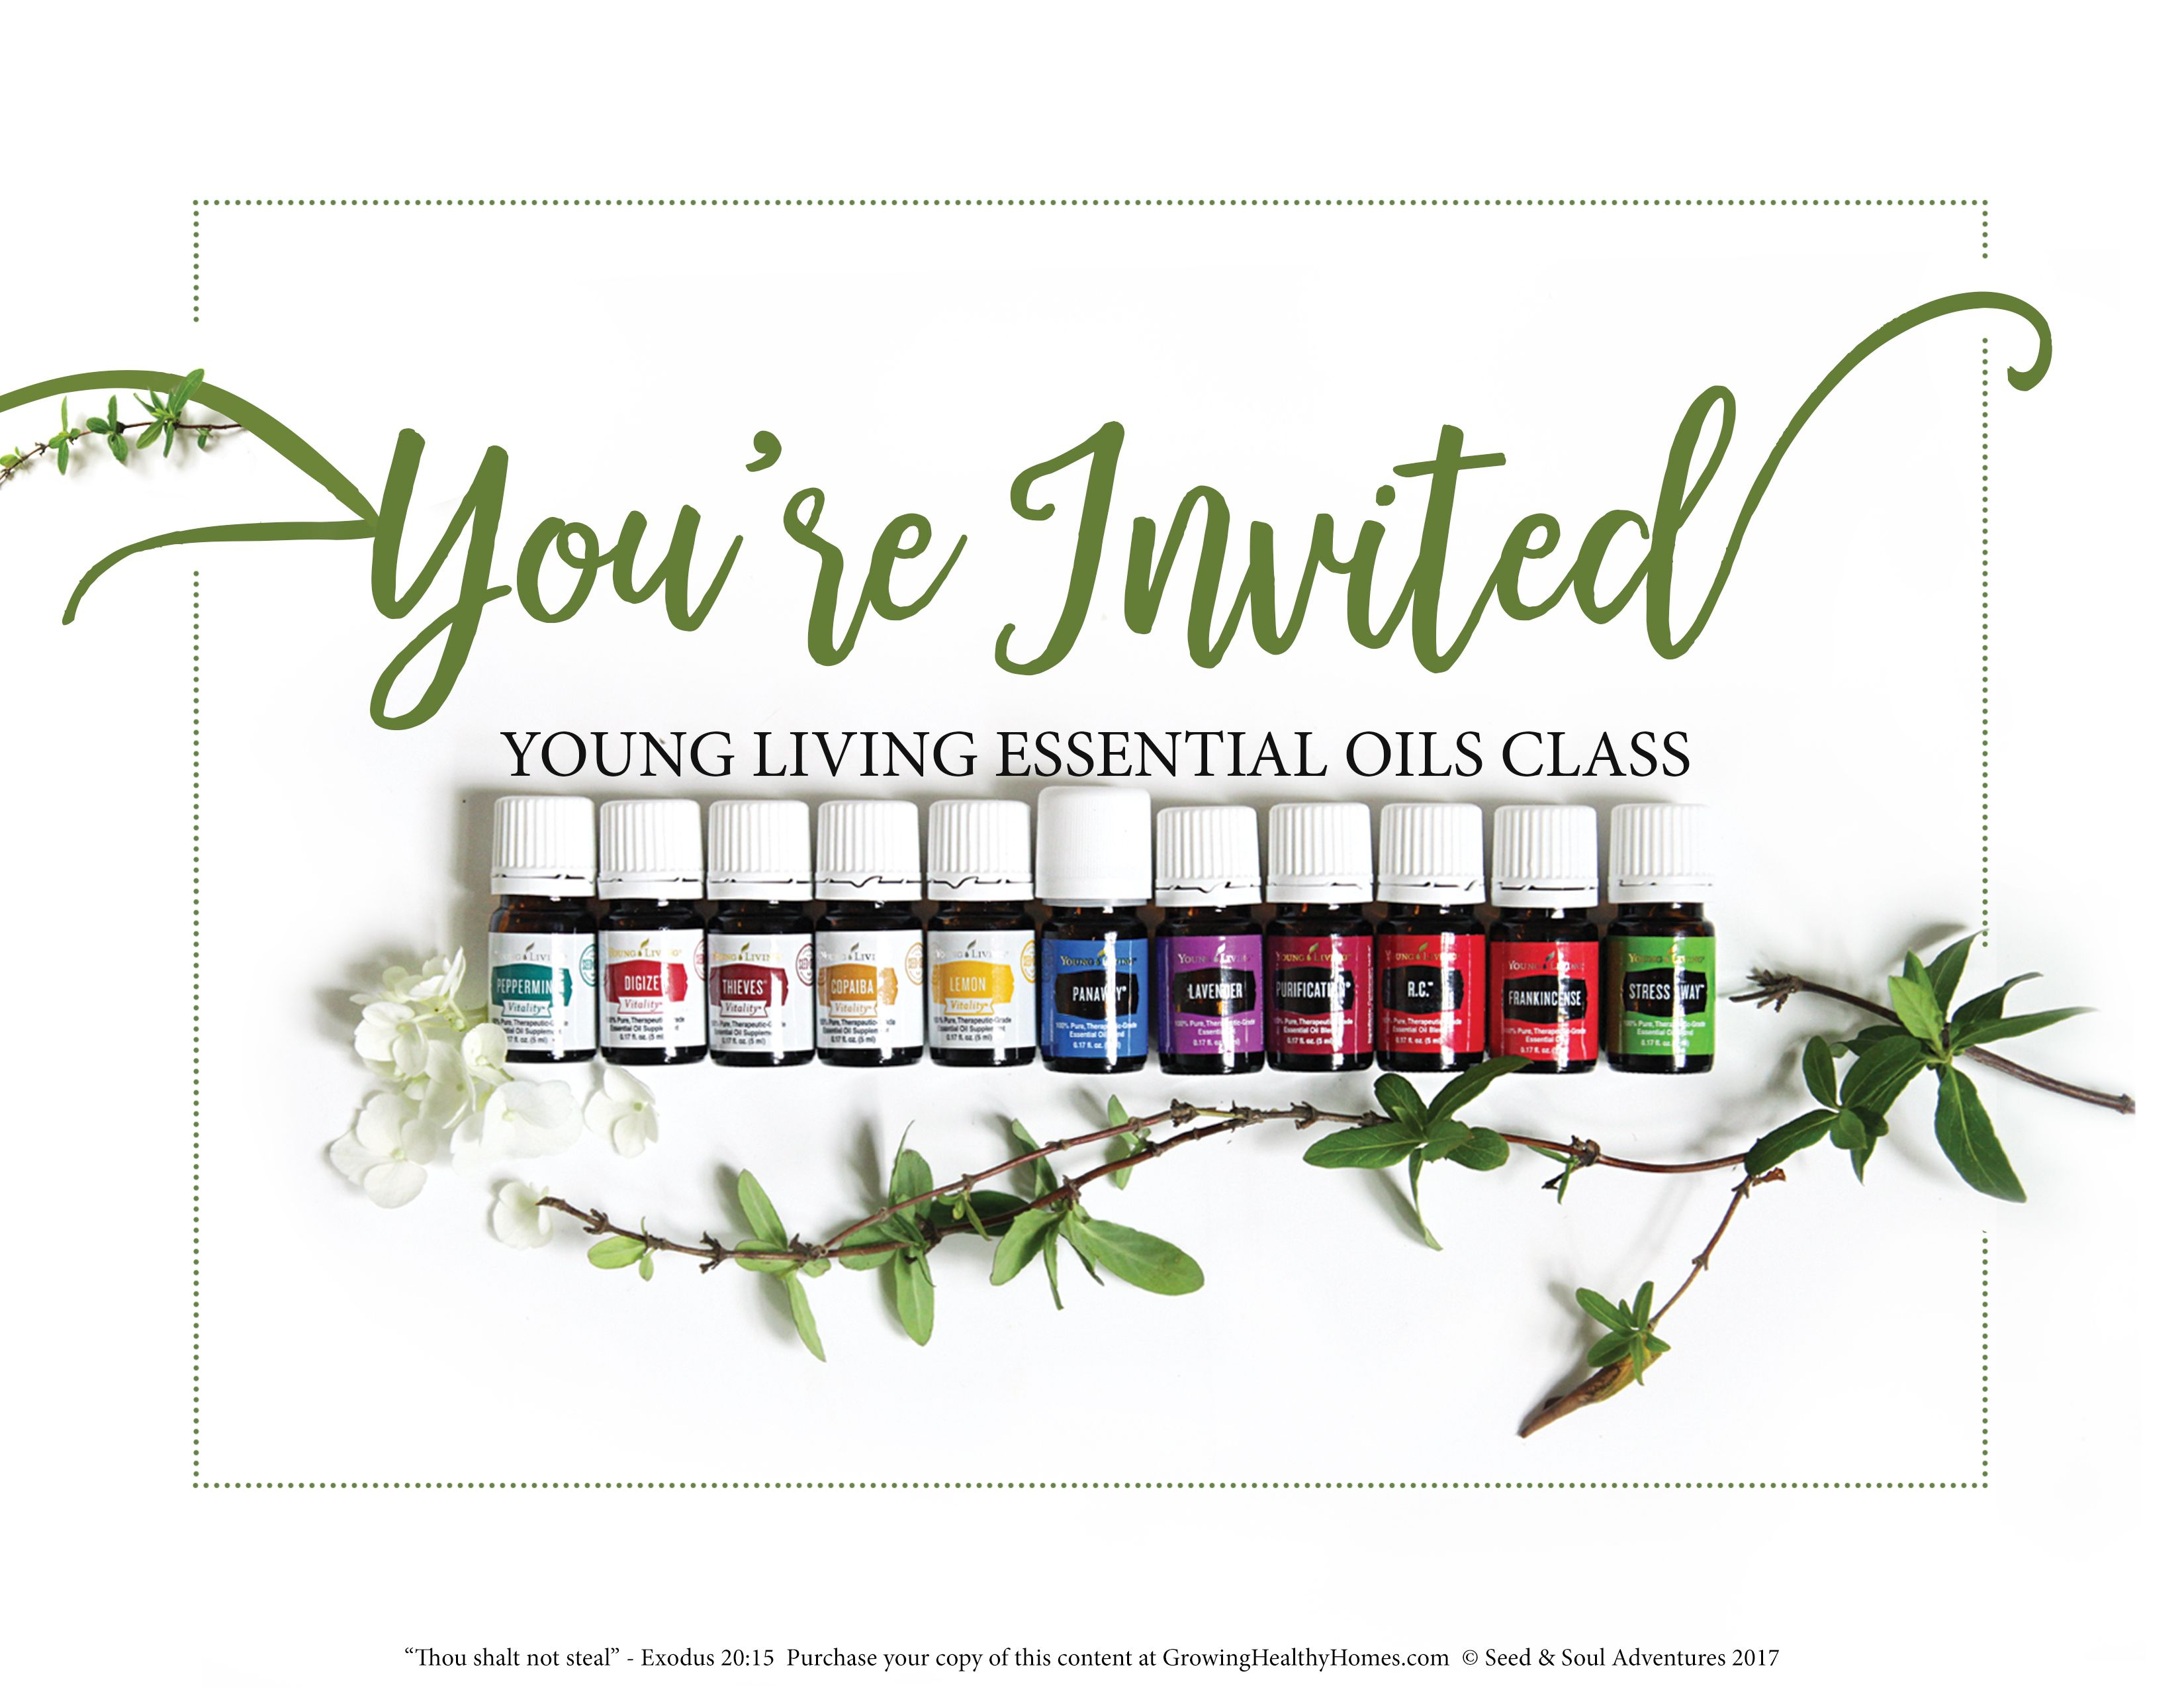 Young Living Essential Oils Online Class And Cyber Monday Sale! Join Us  Online To Learn More! Monday, November 27th All Day